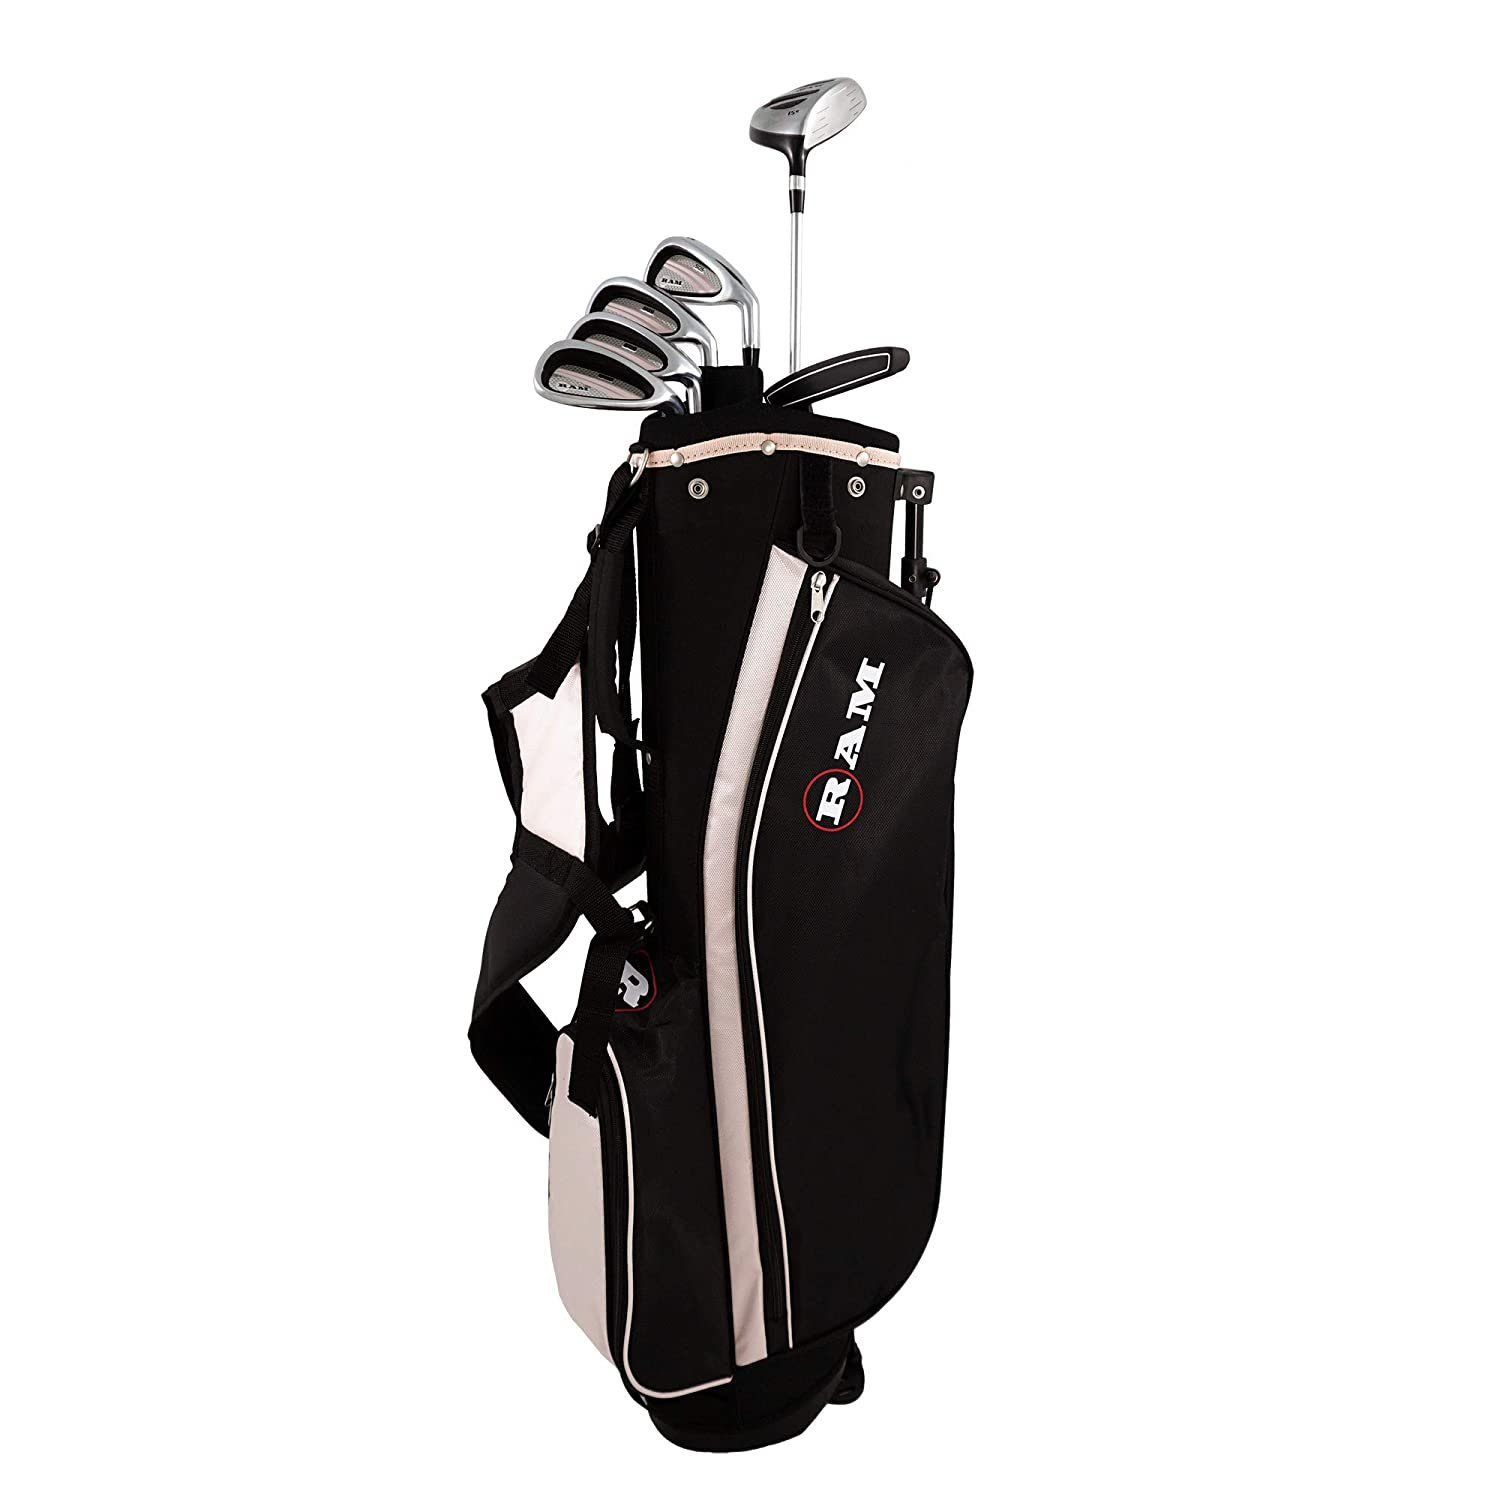 RAM Golf SGS Ladies Right Hand Golf Clubs Starter Set w Stand Bag -Steel Shafts